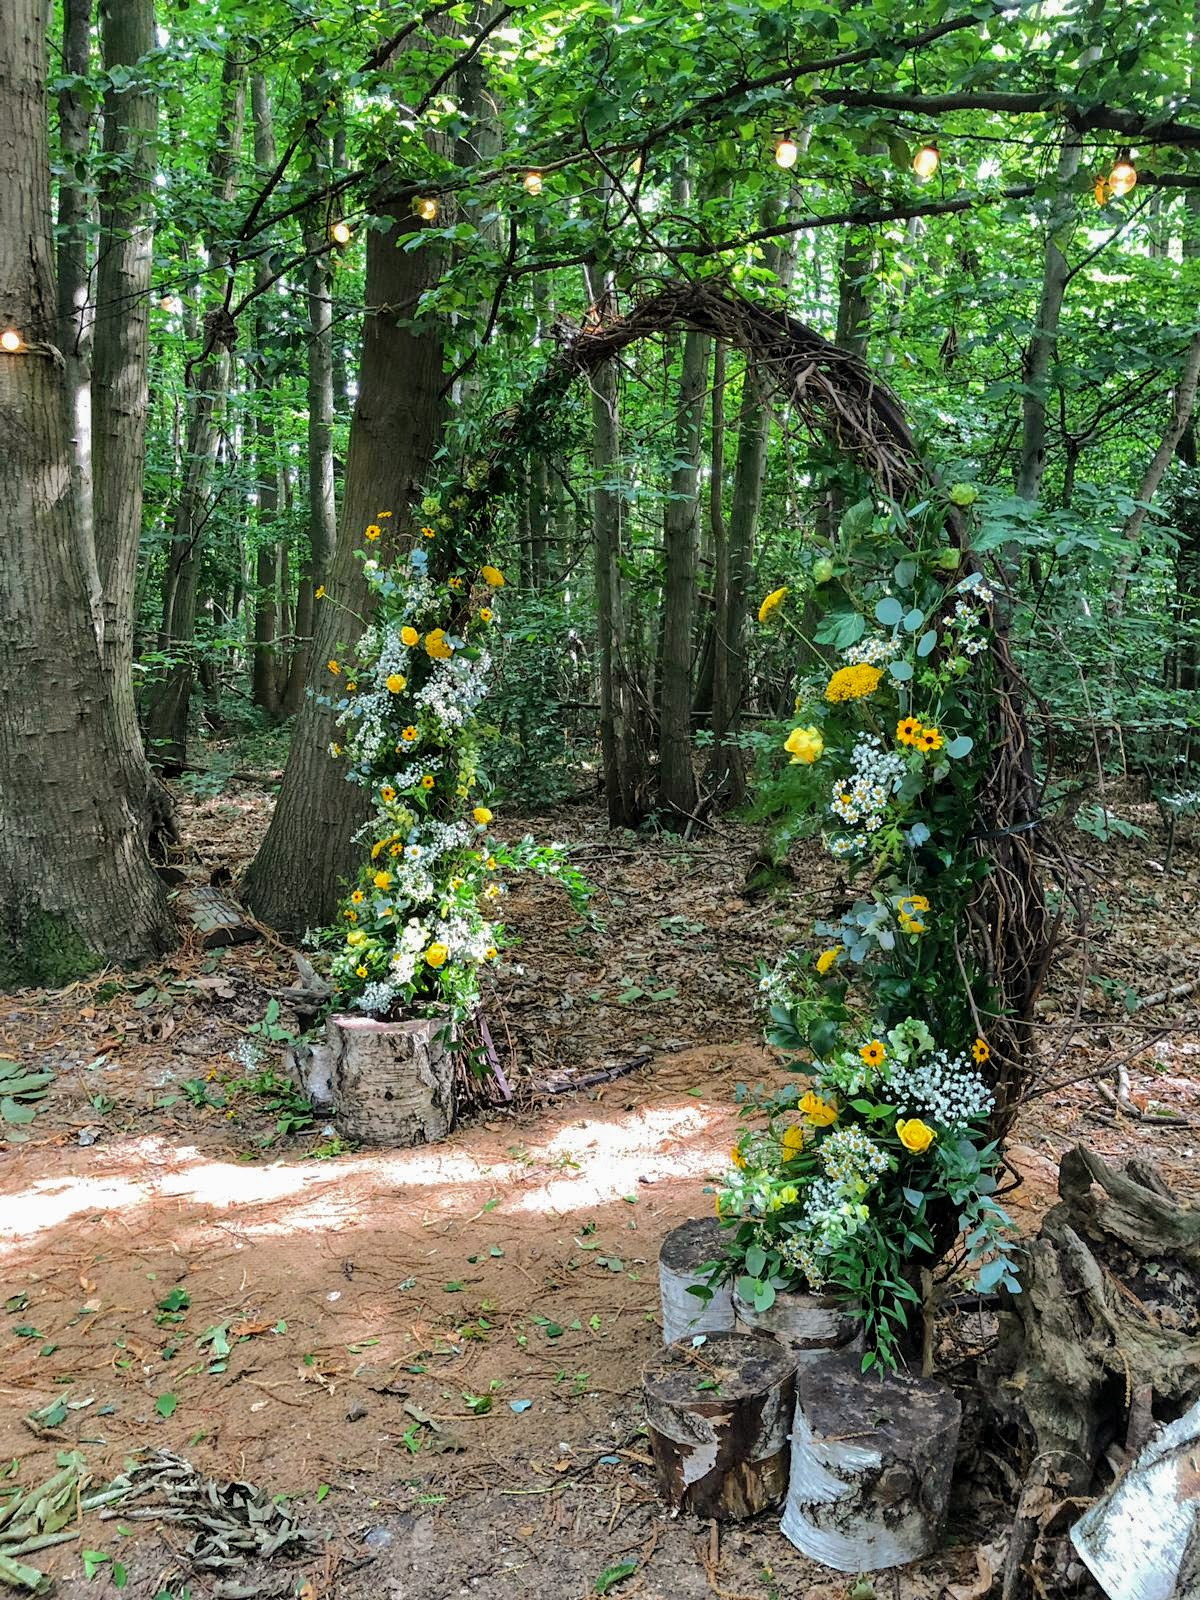 Archway at The Dreys in the woodland